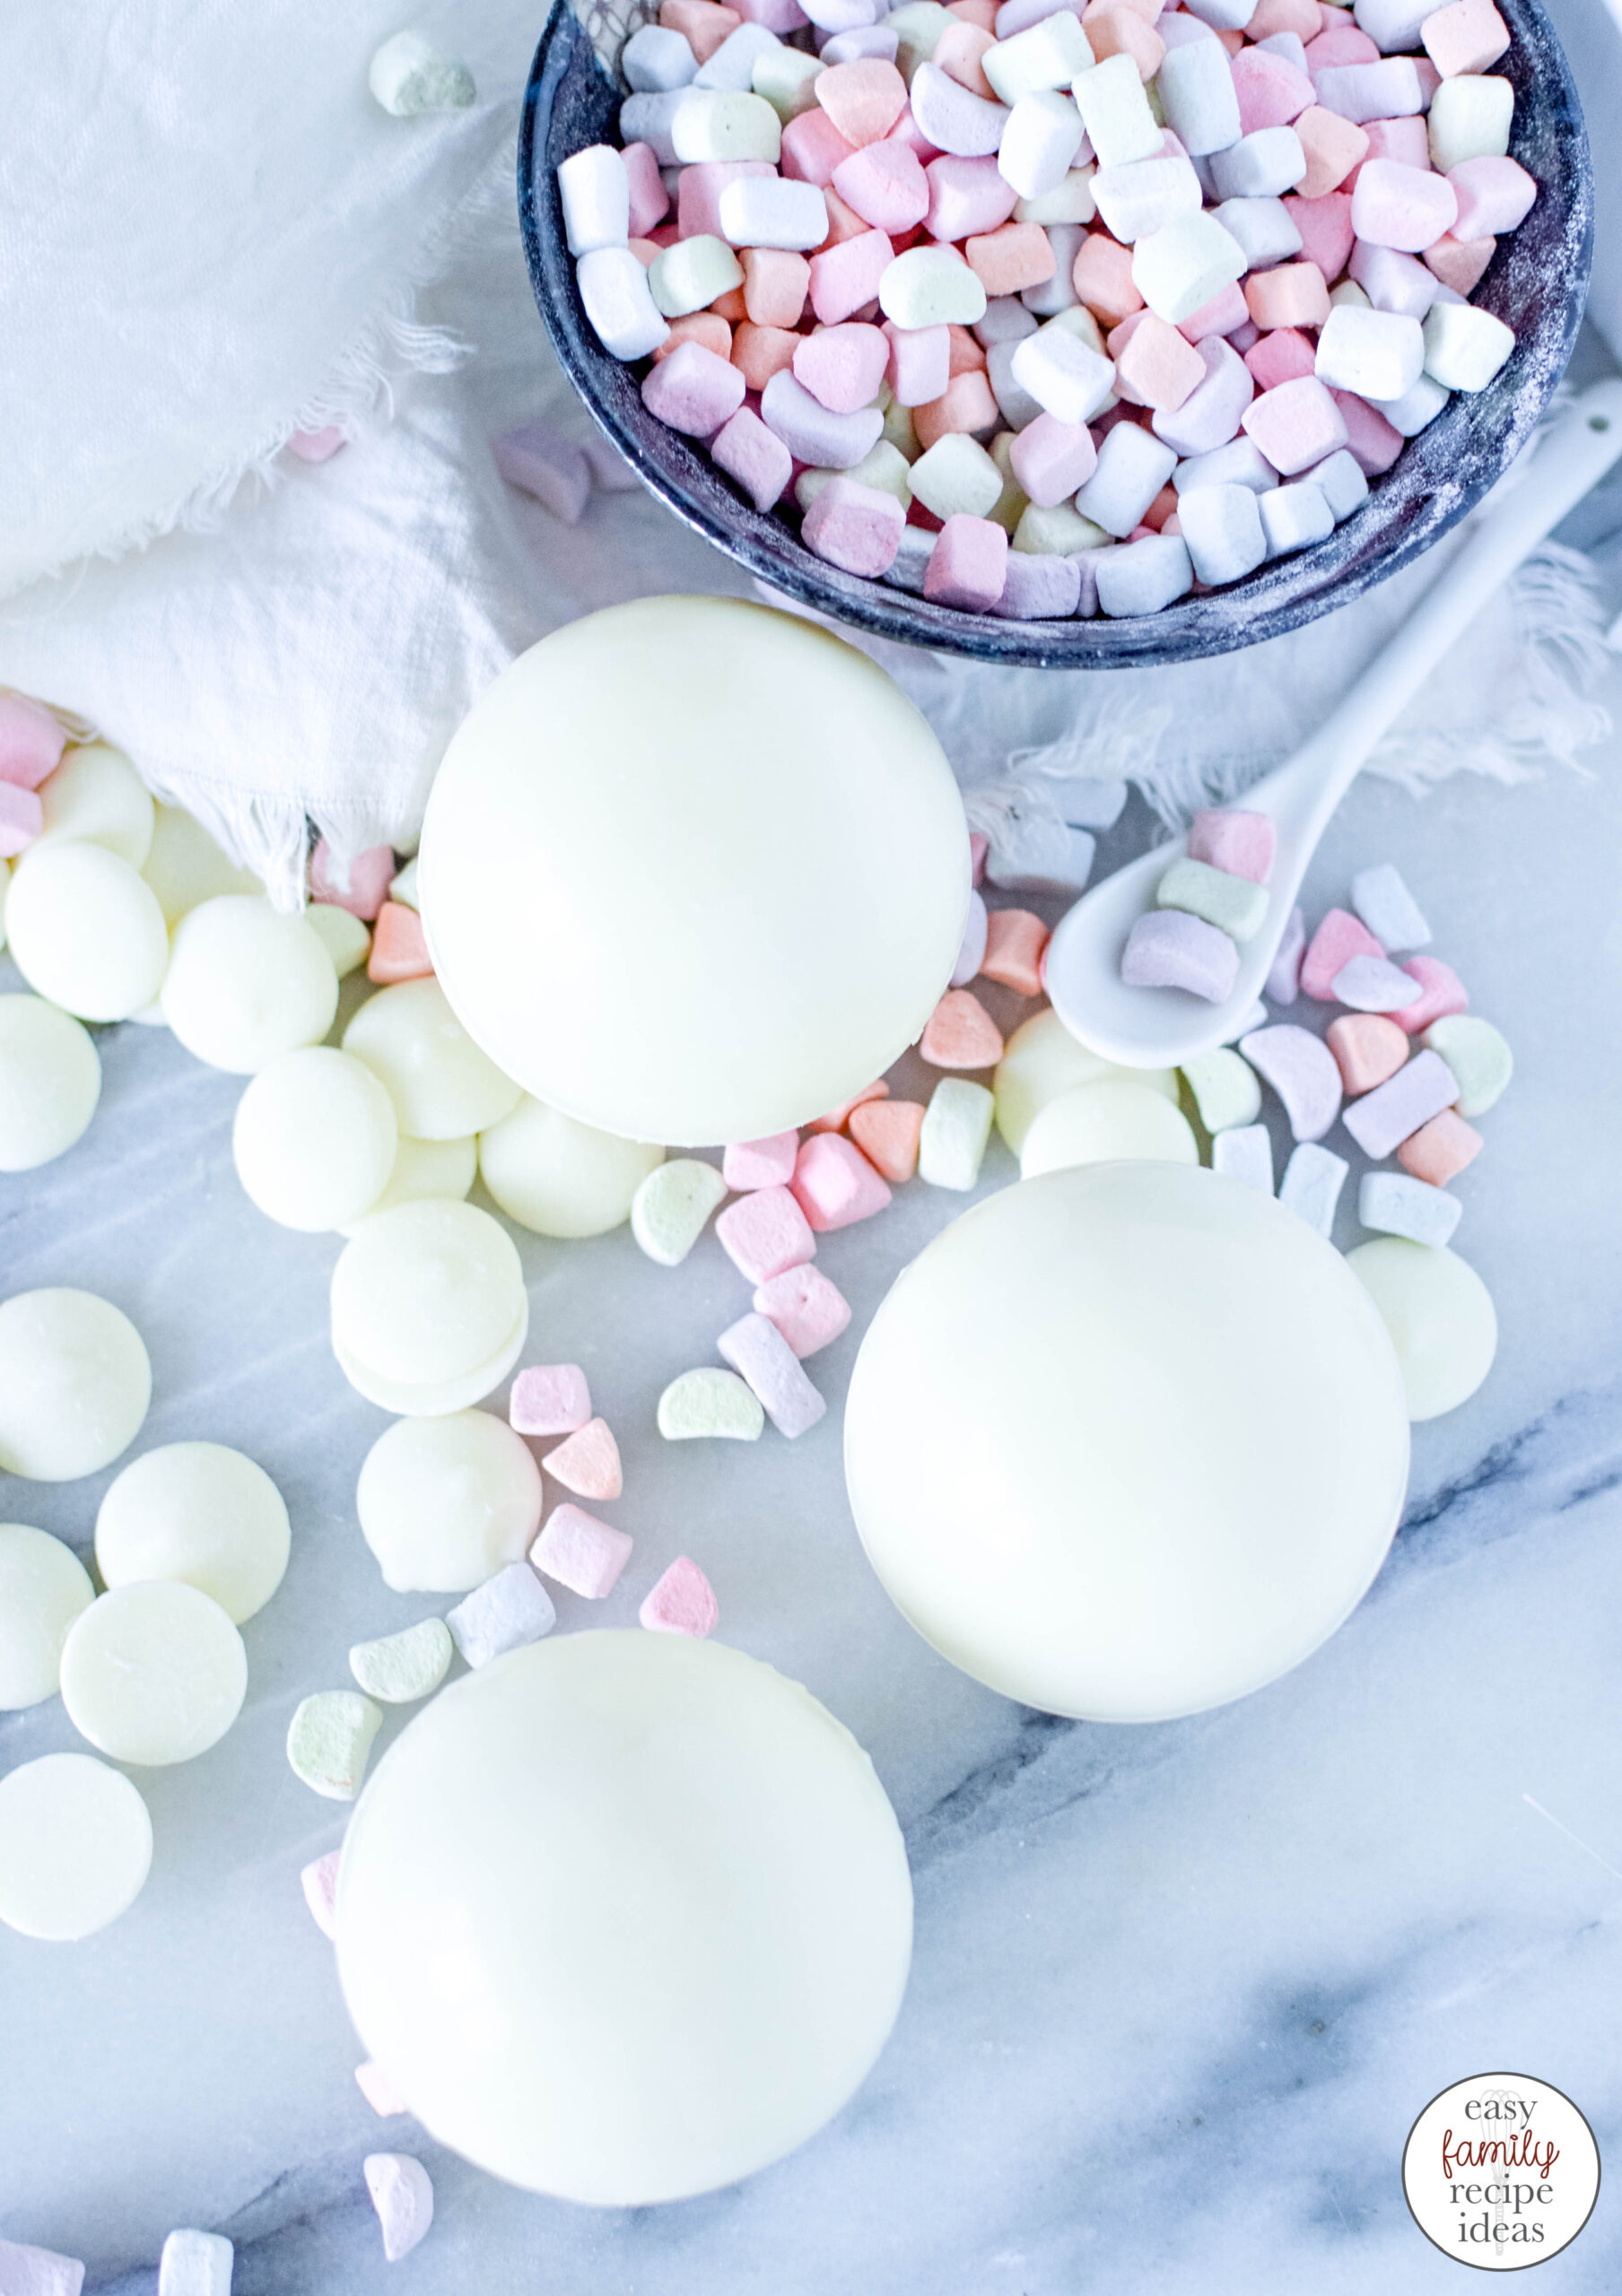 These Hot Cocoa Bombs with Lucky Charms are so good! Learn How to Make Pot of Gold White Chocolate Bomb for St. Patrick's Day or for a Spring Treat, Serve up White Chocolate Hot Chocolate Bombs and St. Patrick's Day Hot Chocolate Bombs to your friends and family